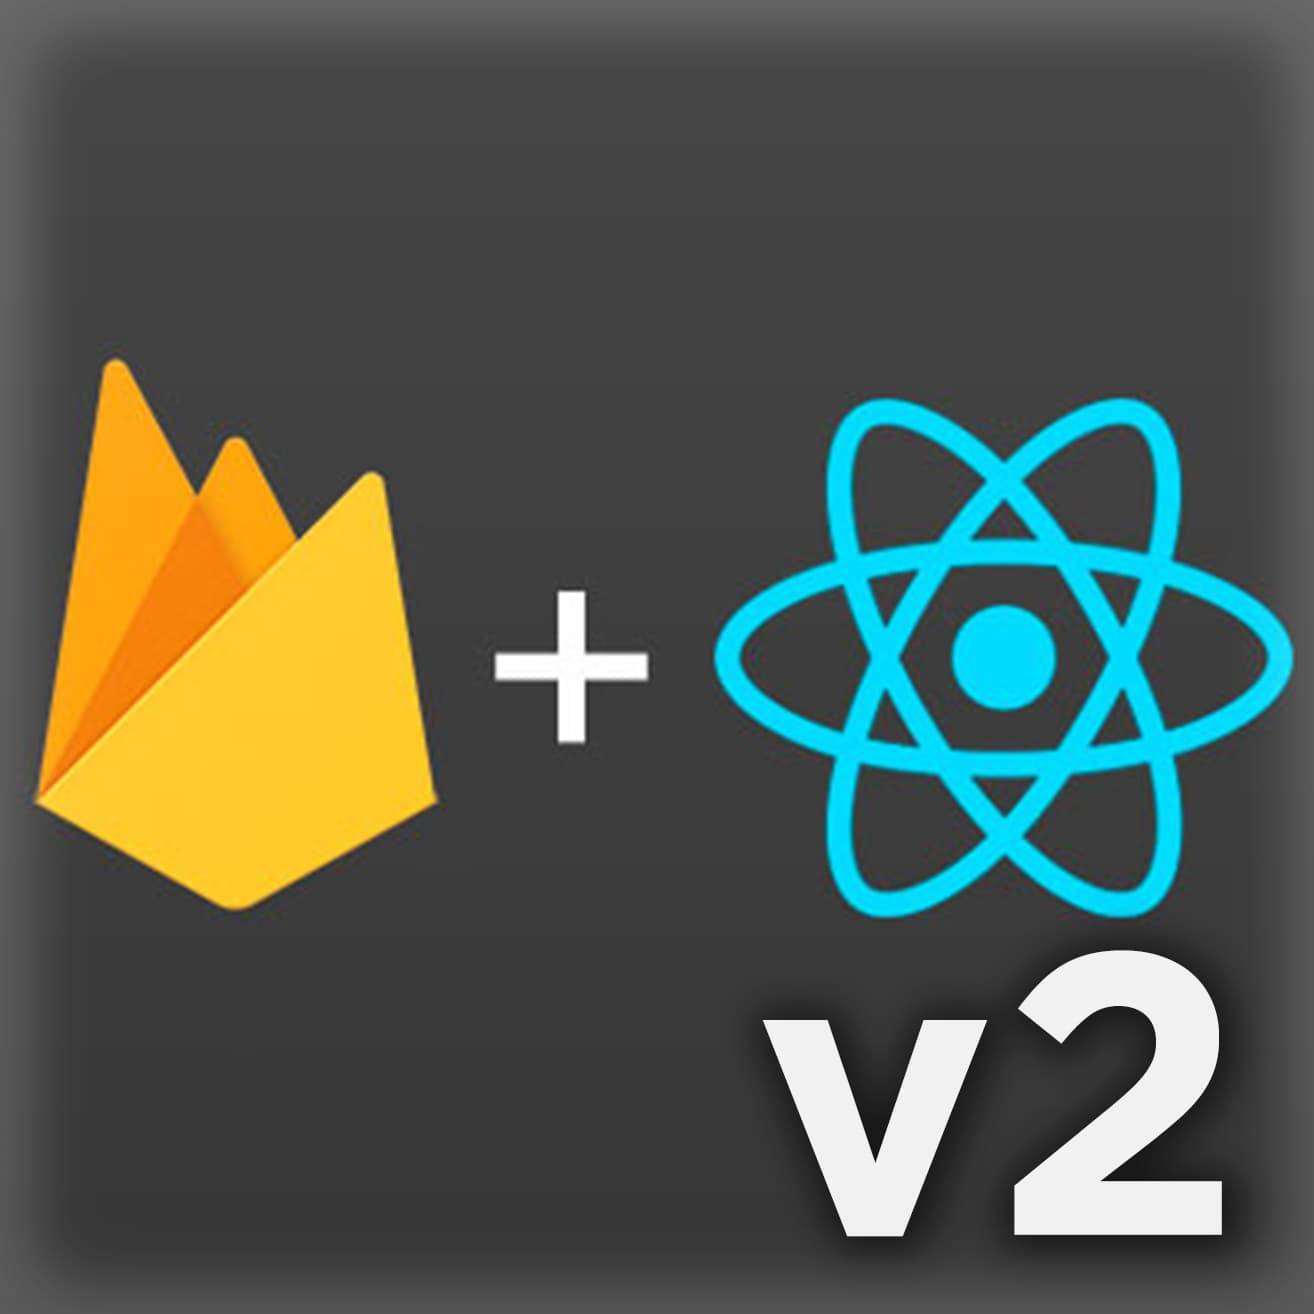 Learn Firebase + React, Server-less Apps v2 in this Workshop